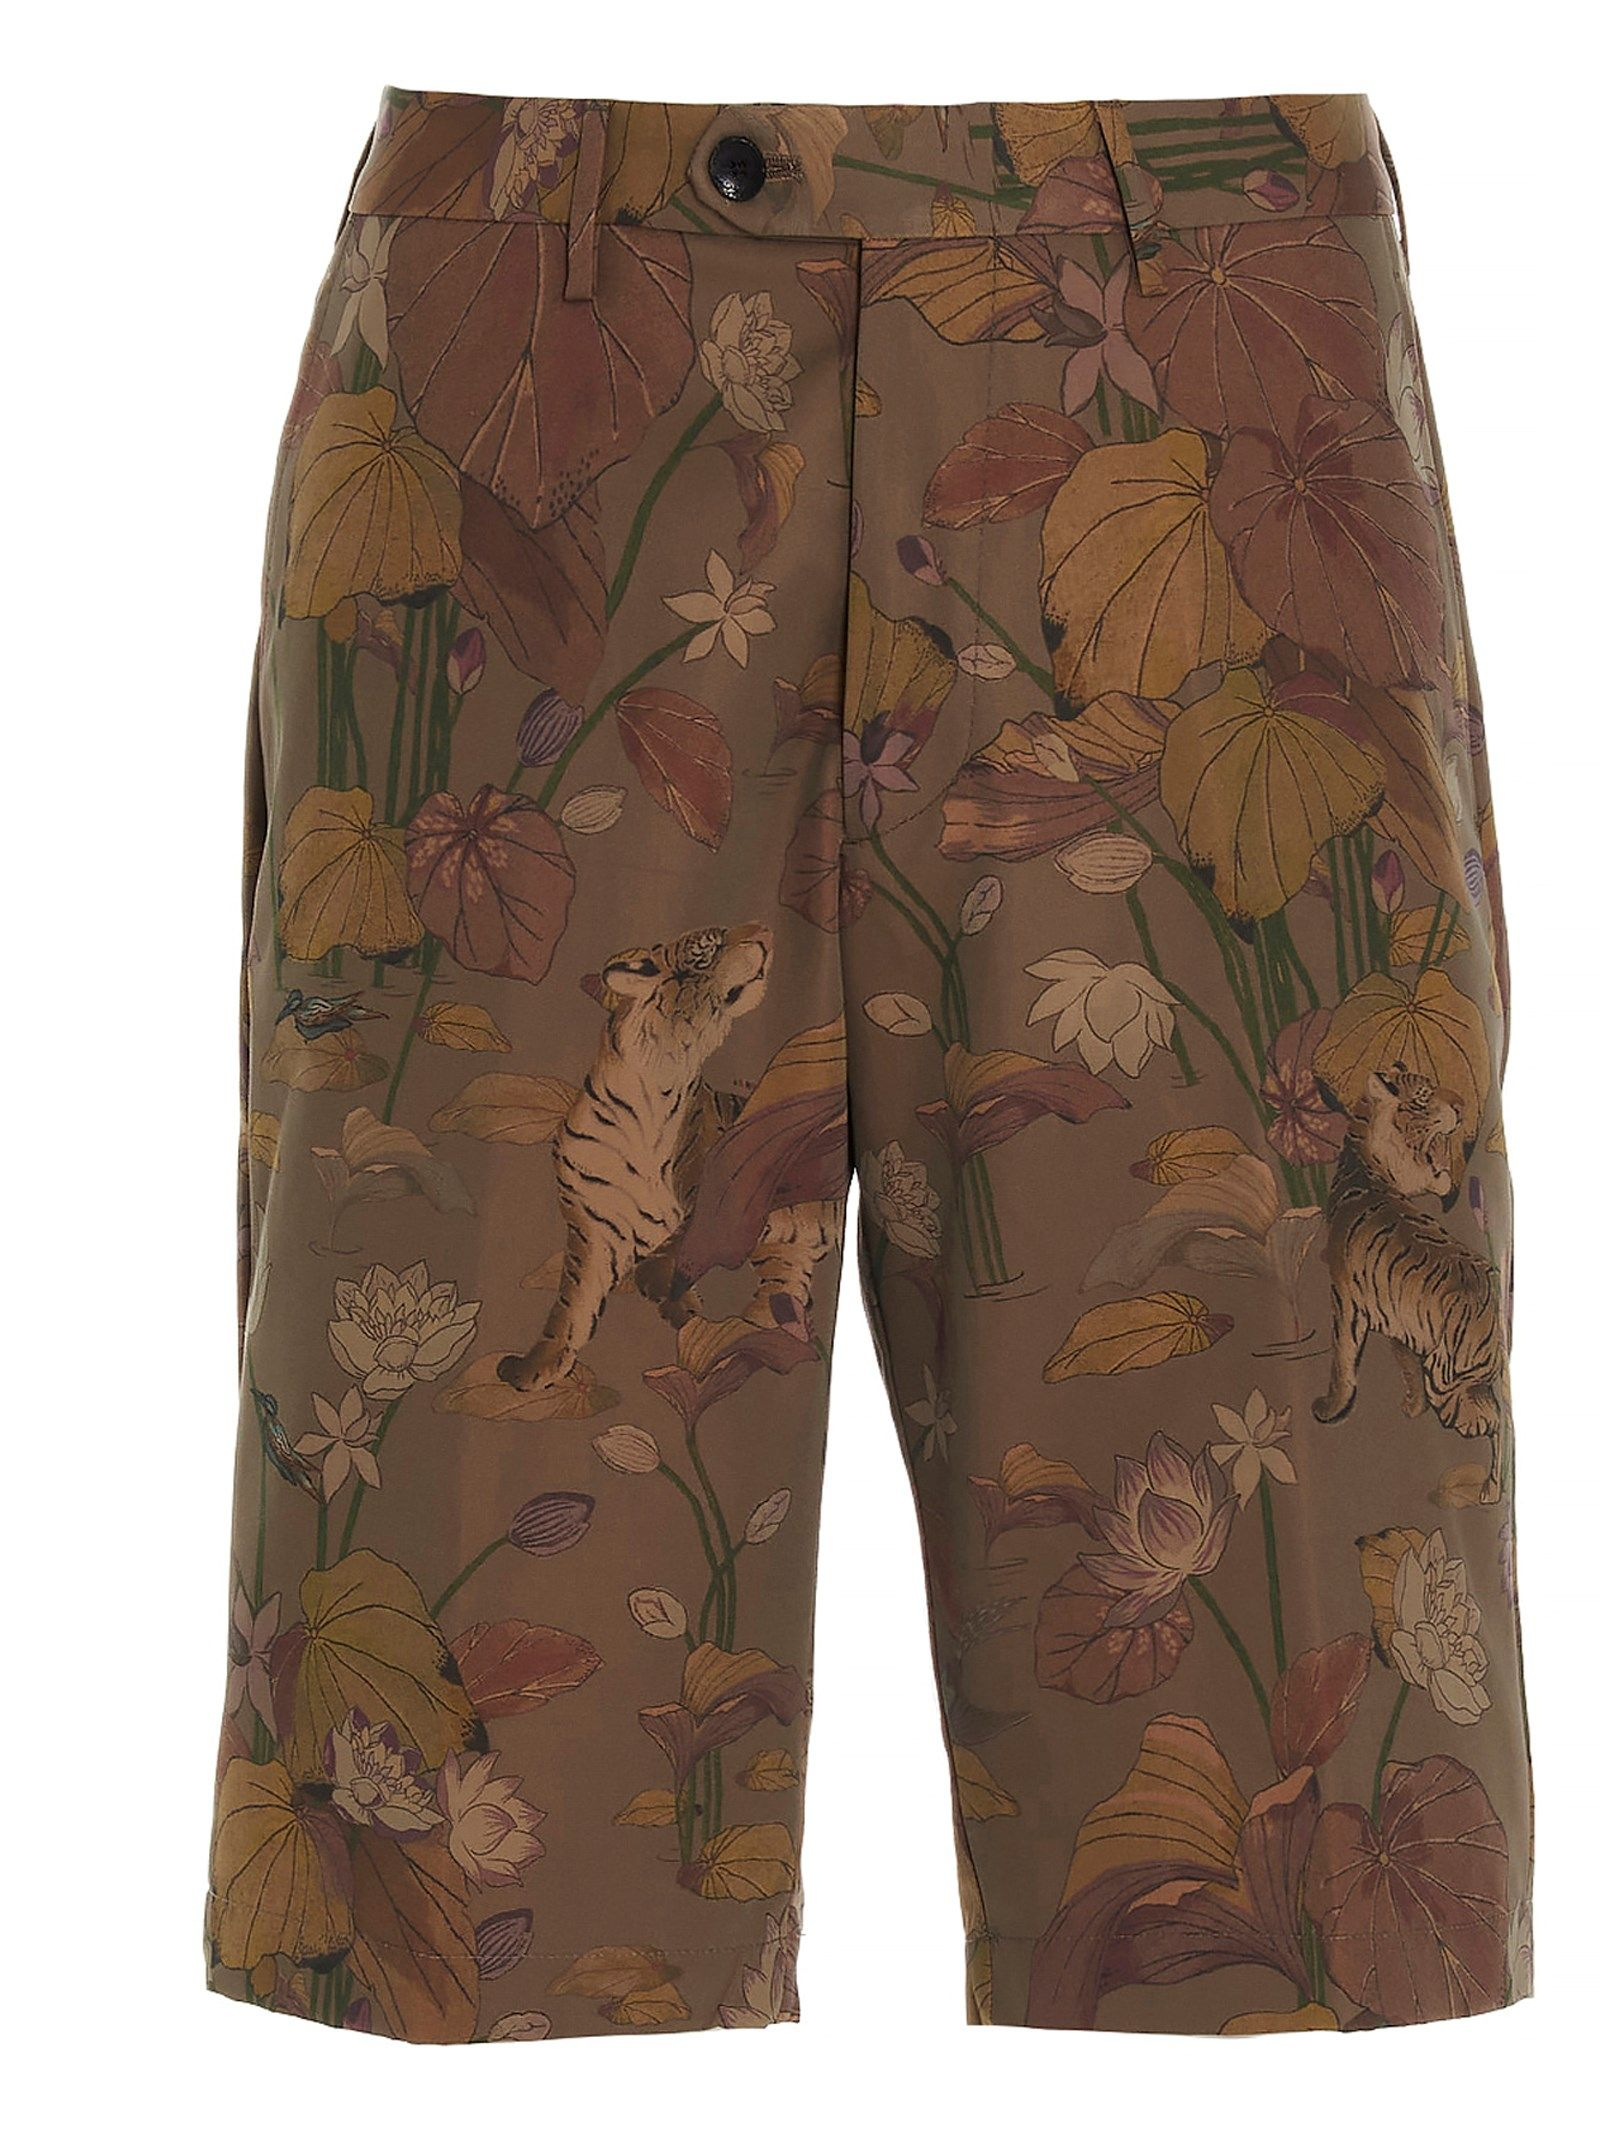 Etro Shorts ETRO MEN'S 1W6564055800 GREEN OTHER MATERIALS SHORTS